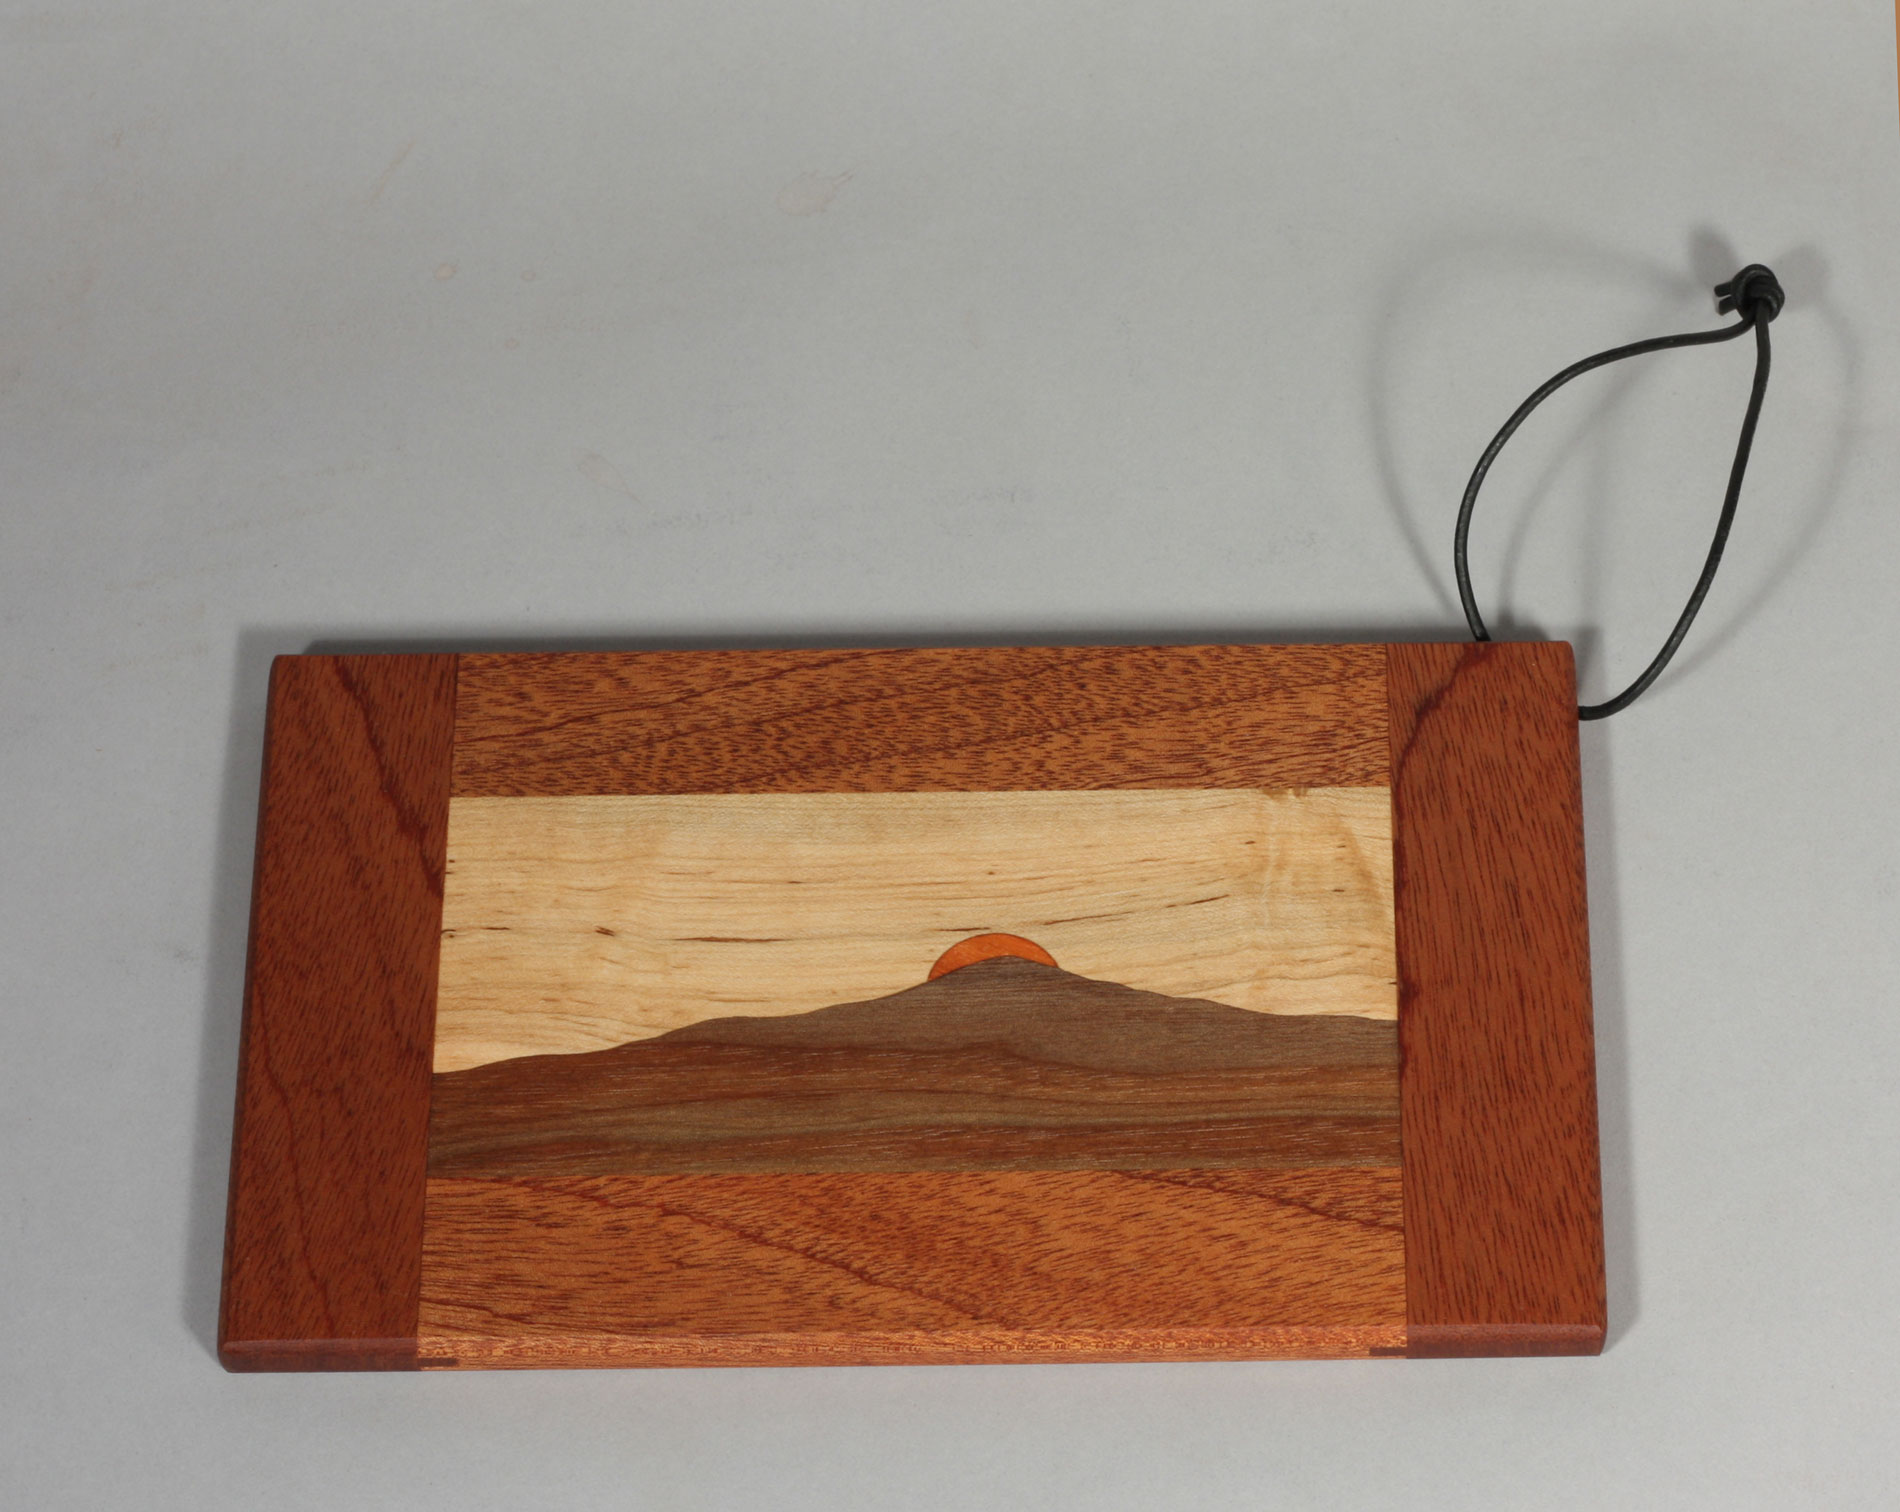 miniature mountain cutting boards and serving trays, Kitchen design